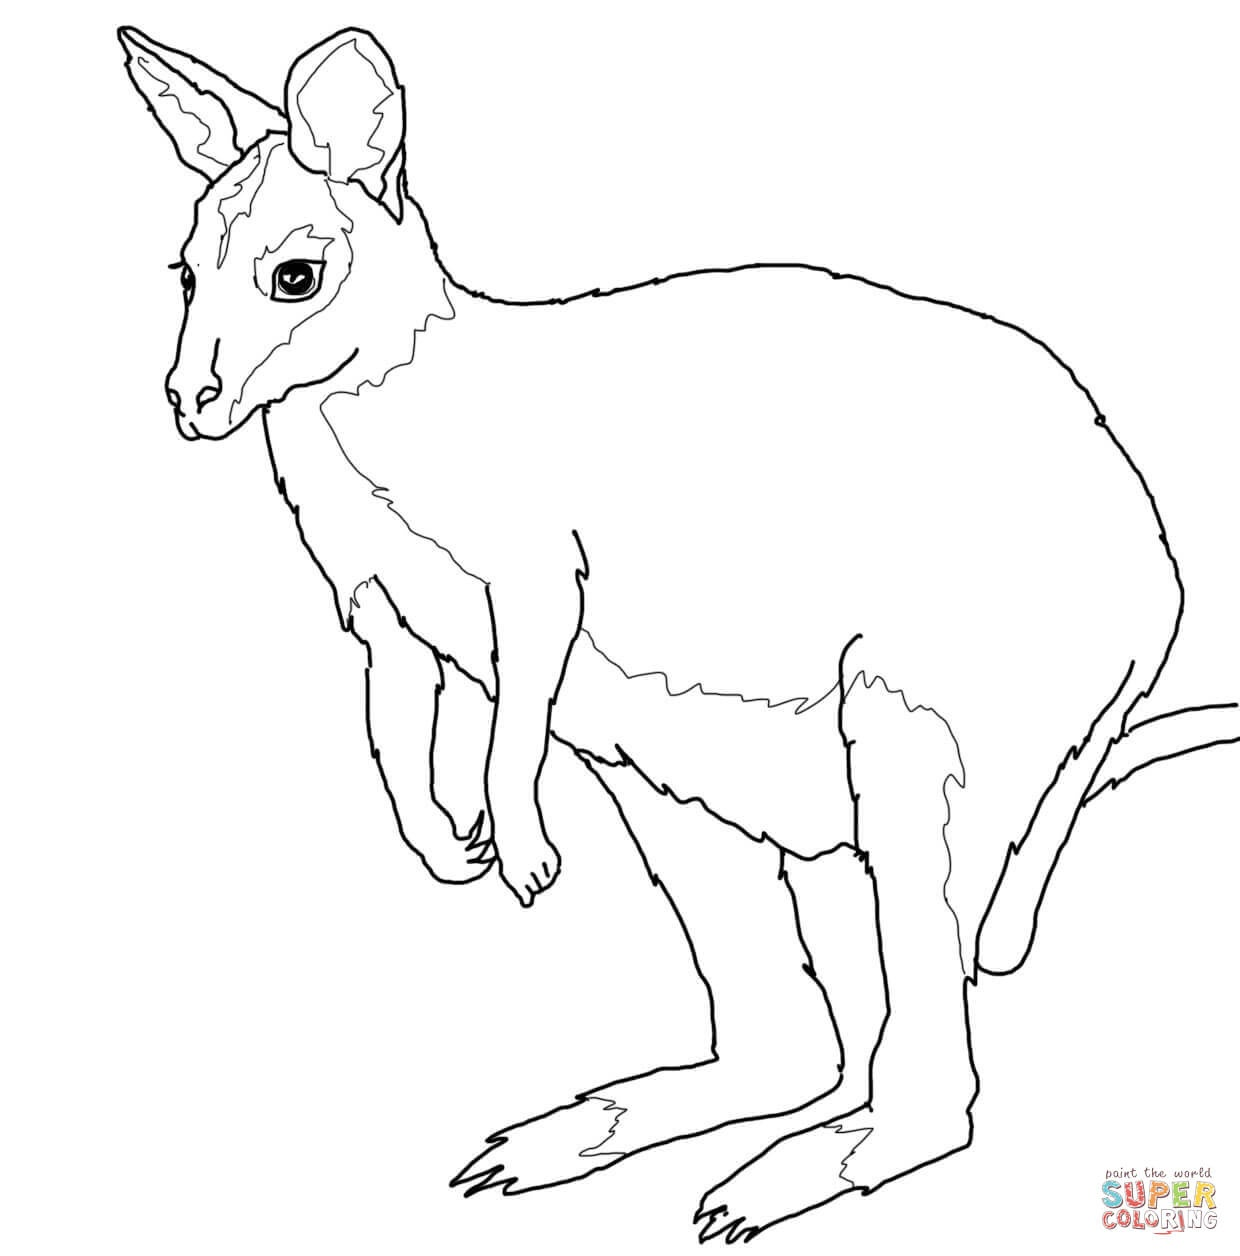 Australian Animals Coloring Pages | Free Printable Pictures - Free Printable Pictures Of Australian Animals